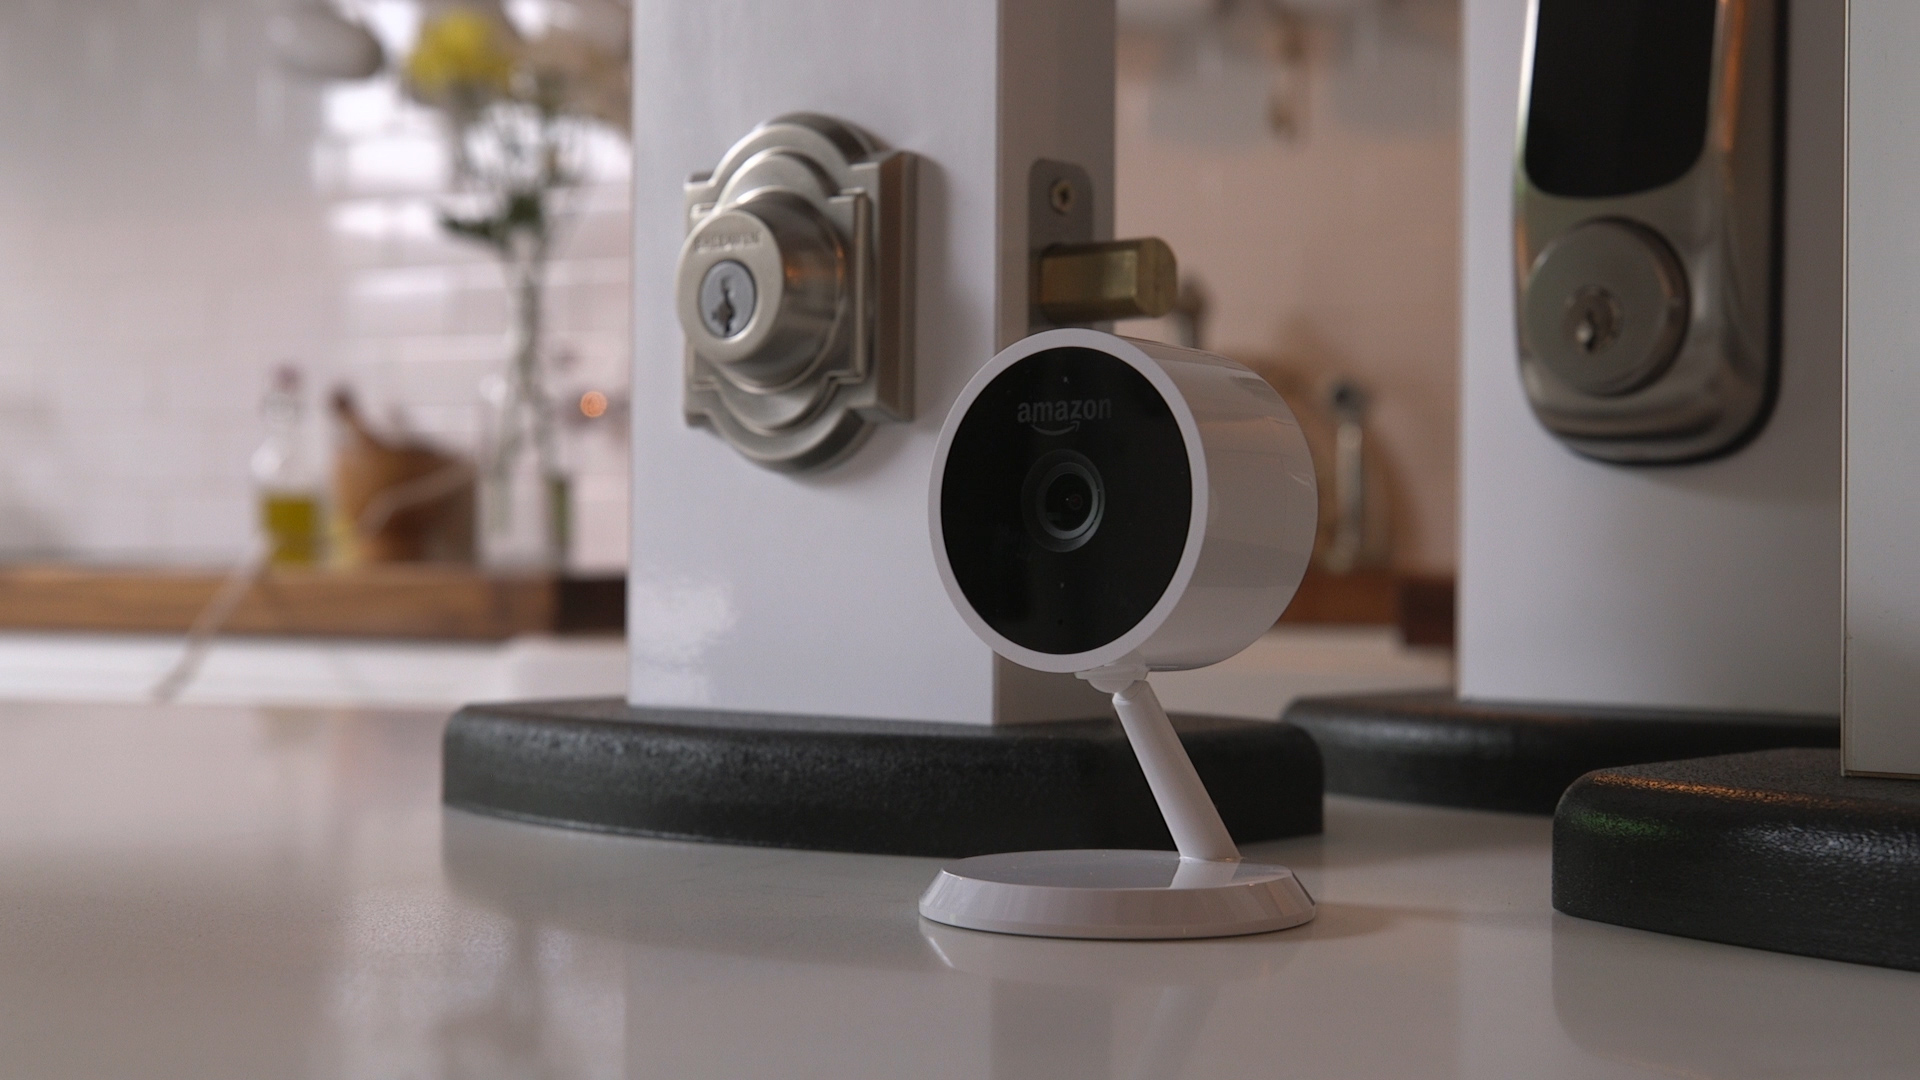 Amazon Cloud Cam: Meet the official Alexa security camera